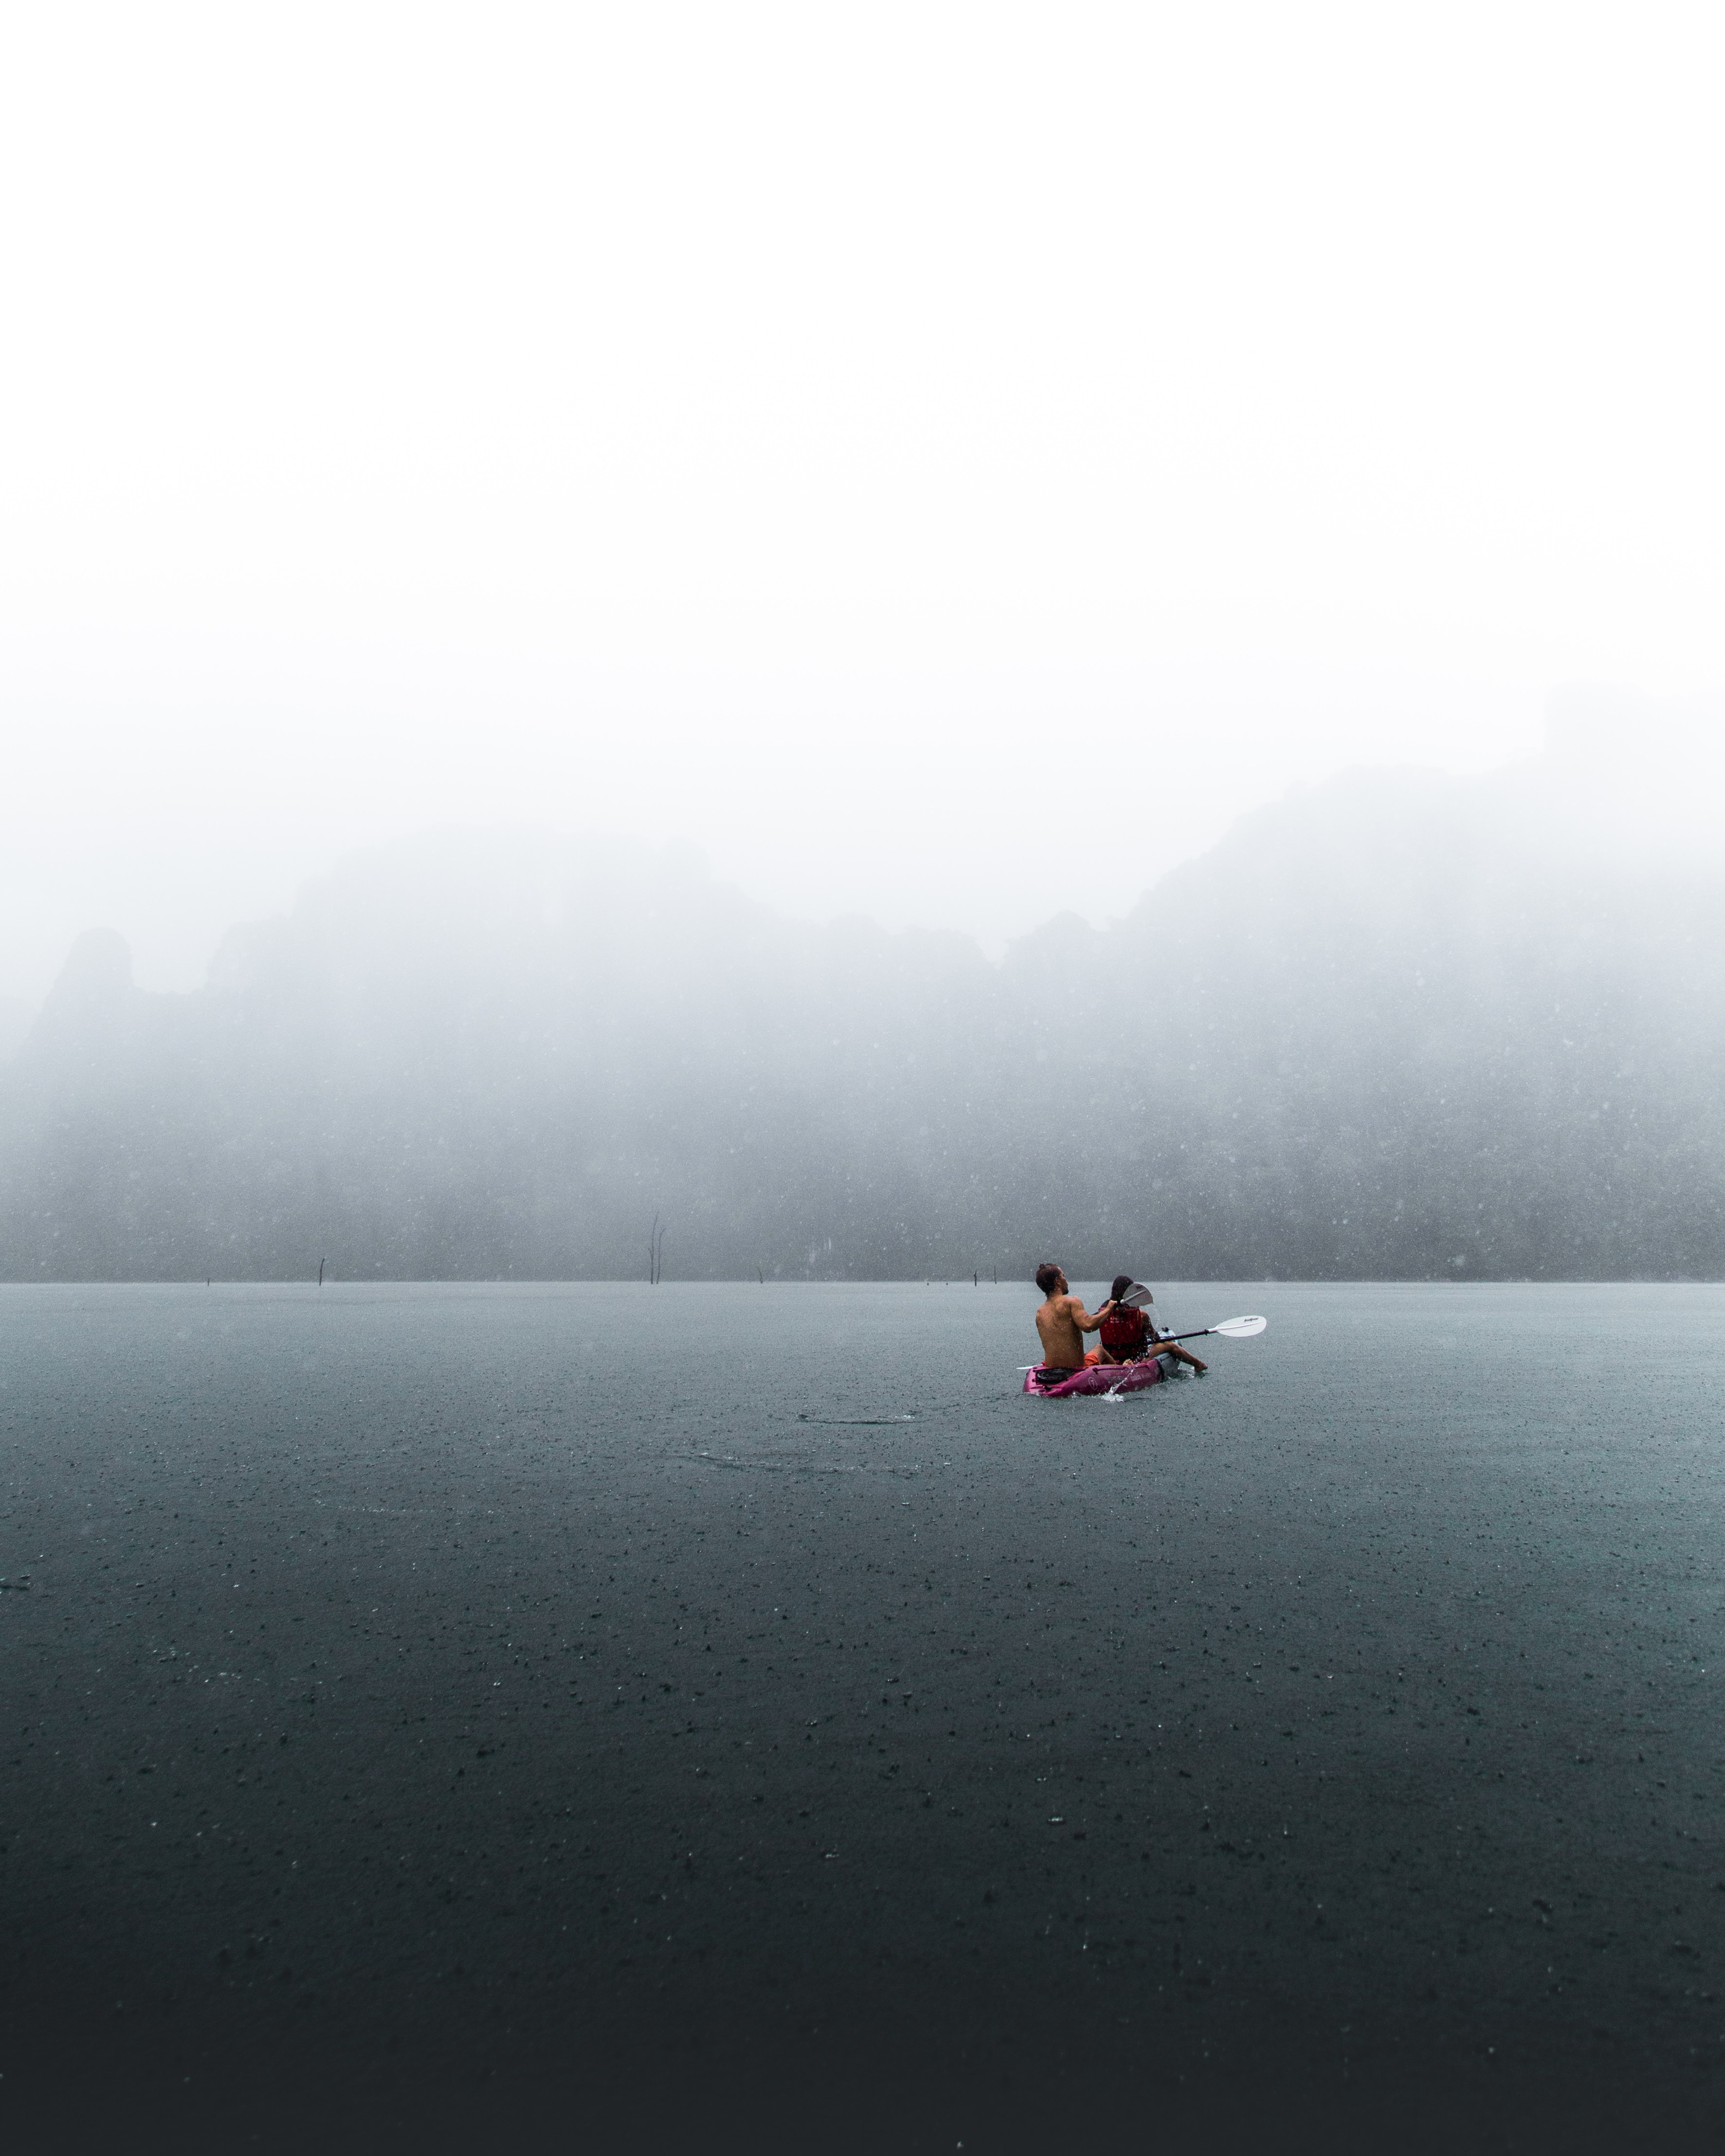 person in boat on body of water